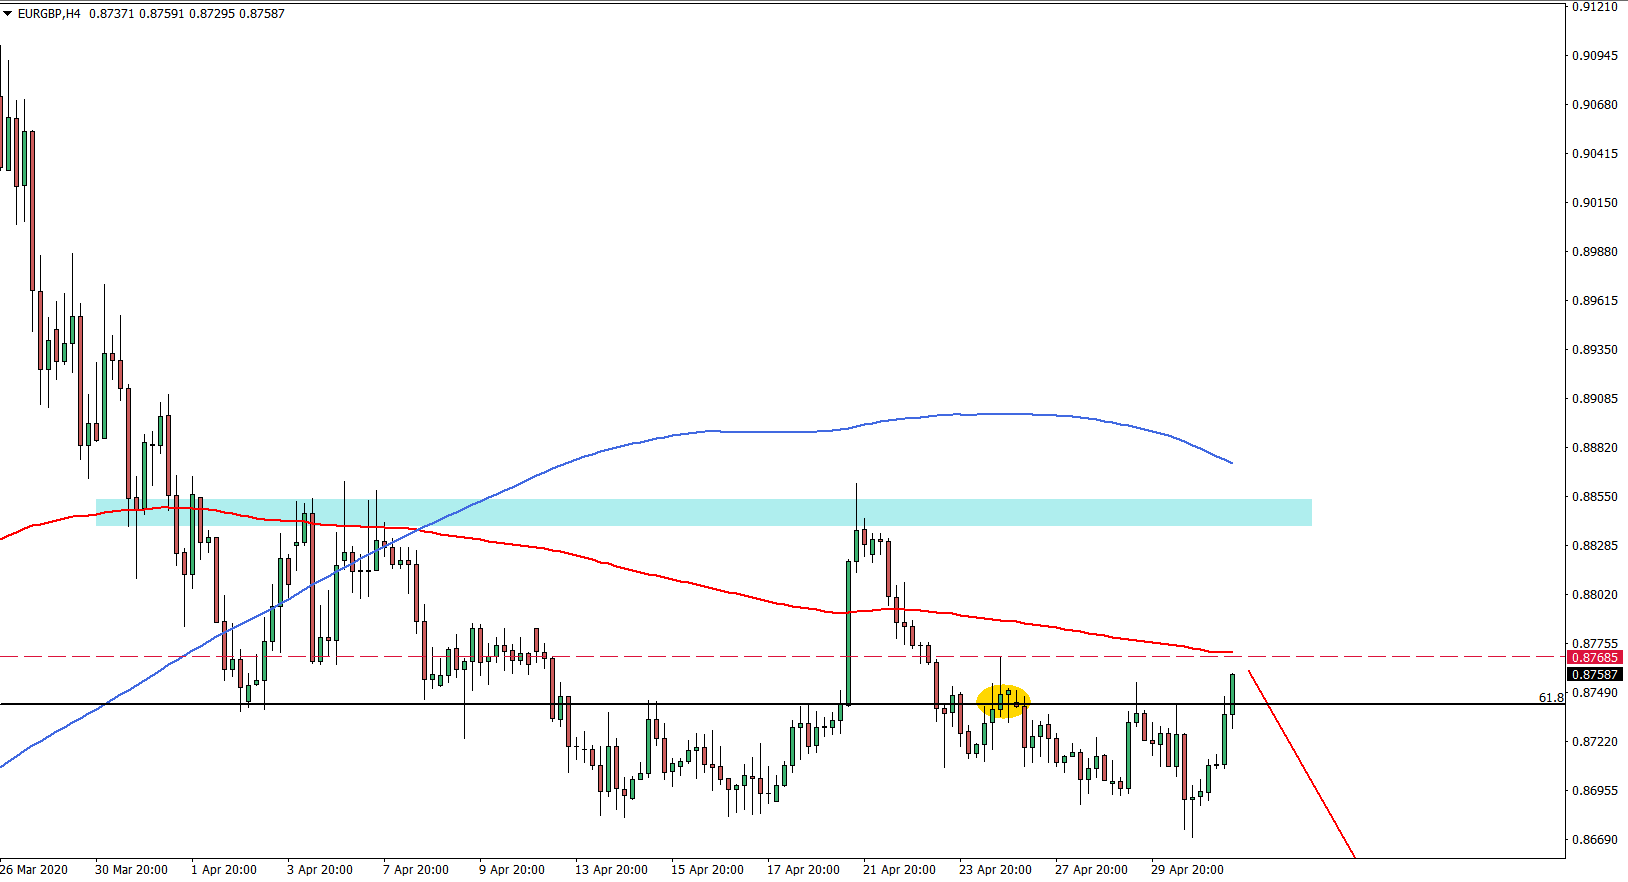 EURGBP 4H Chart May 1st 2020